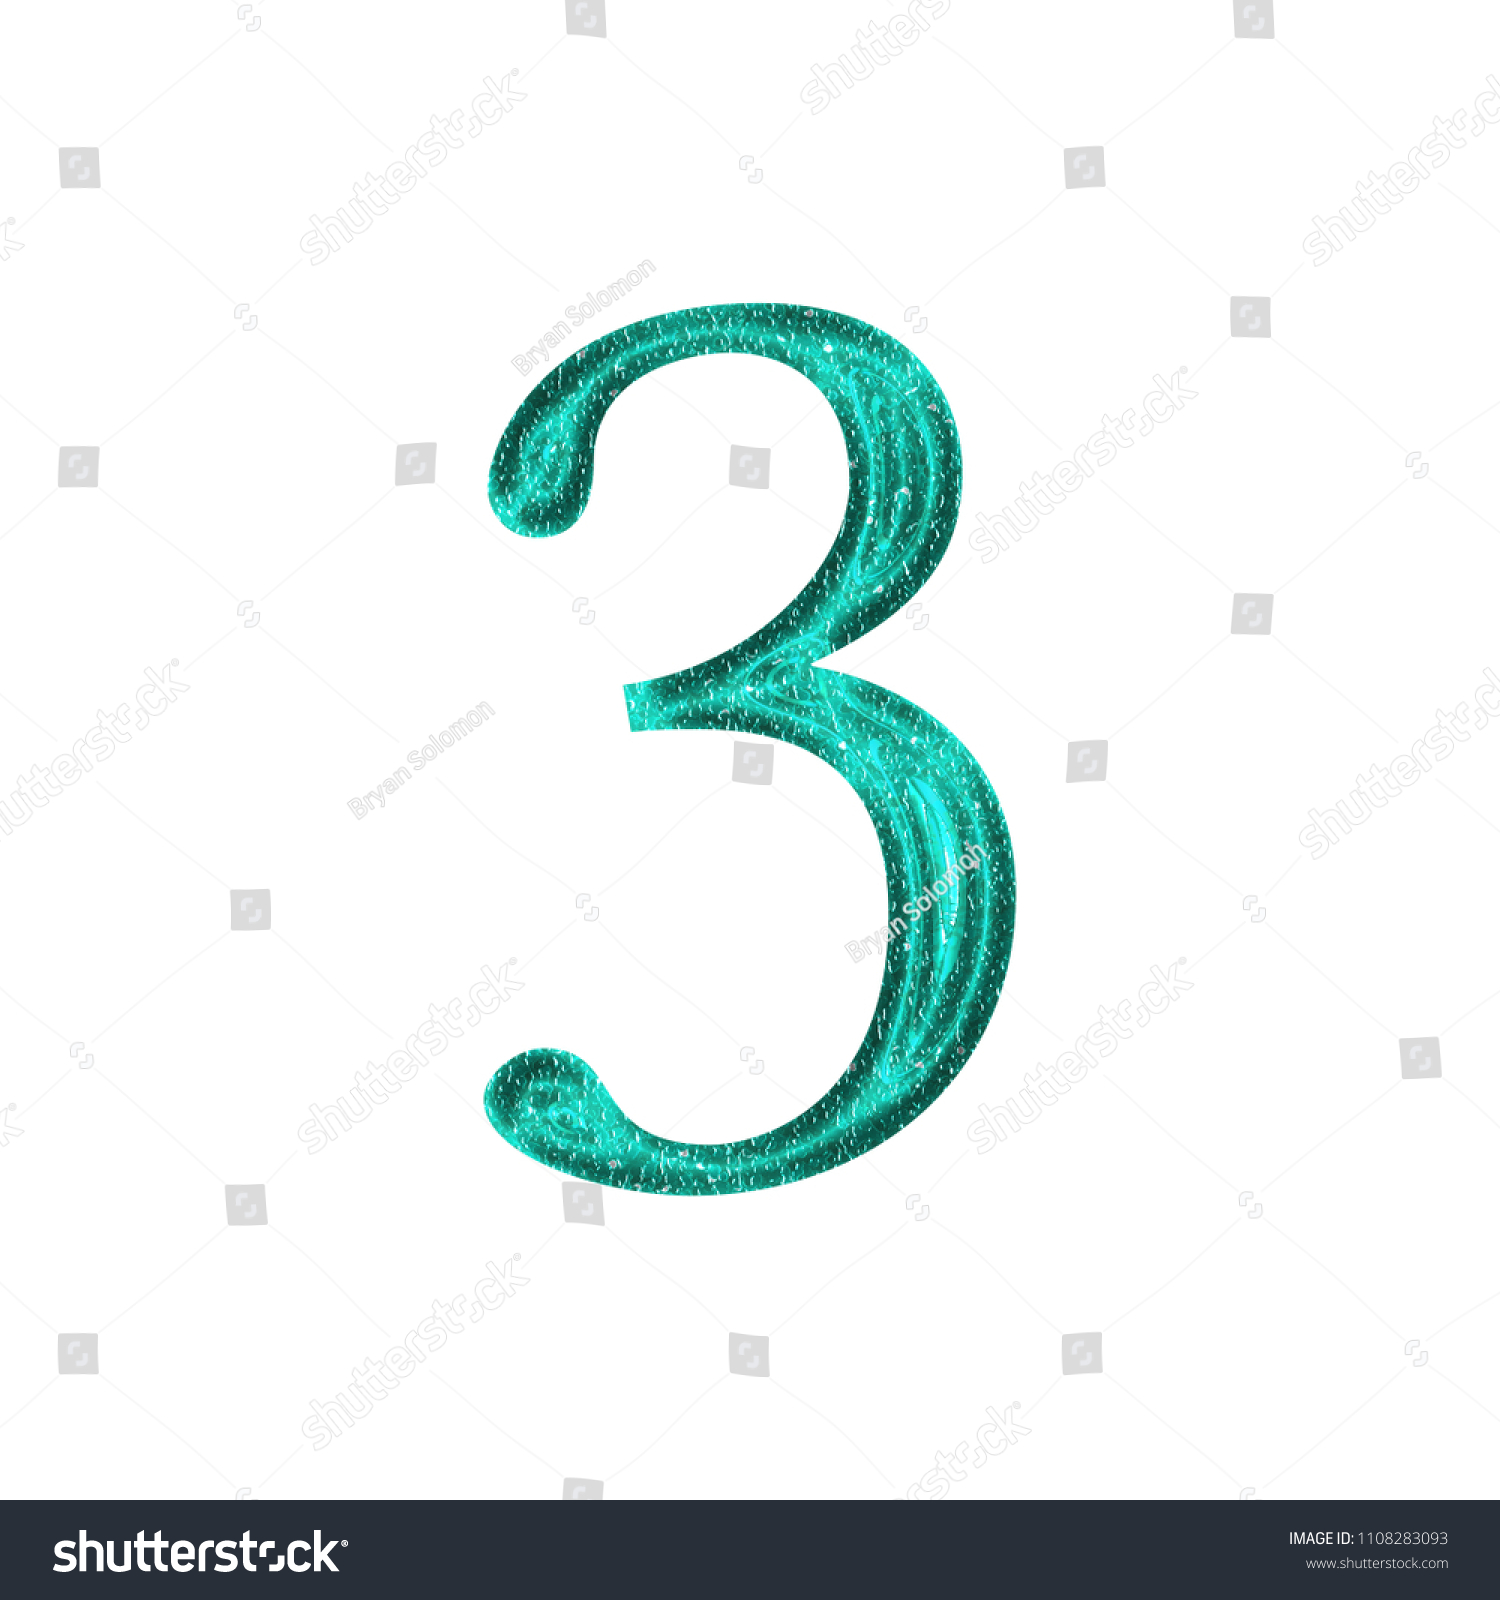 Shiny Sparkly Teal Color Plastic Number Stock Illustration ...